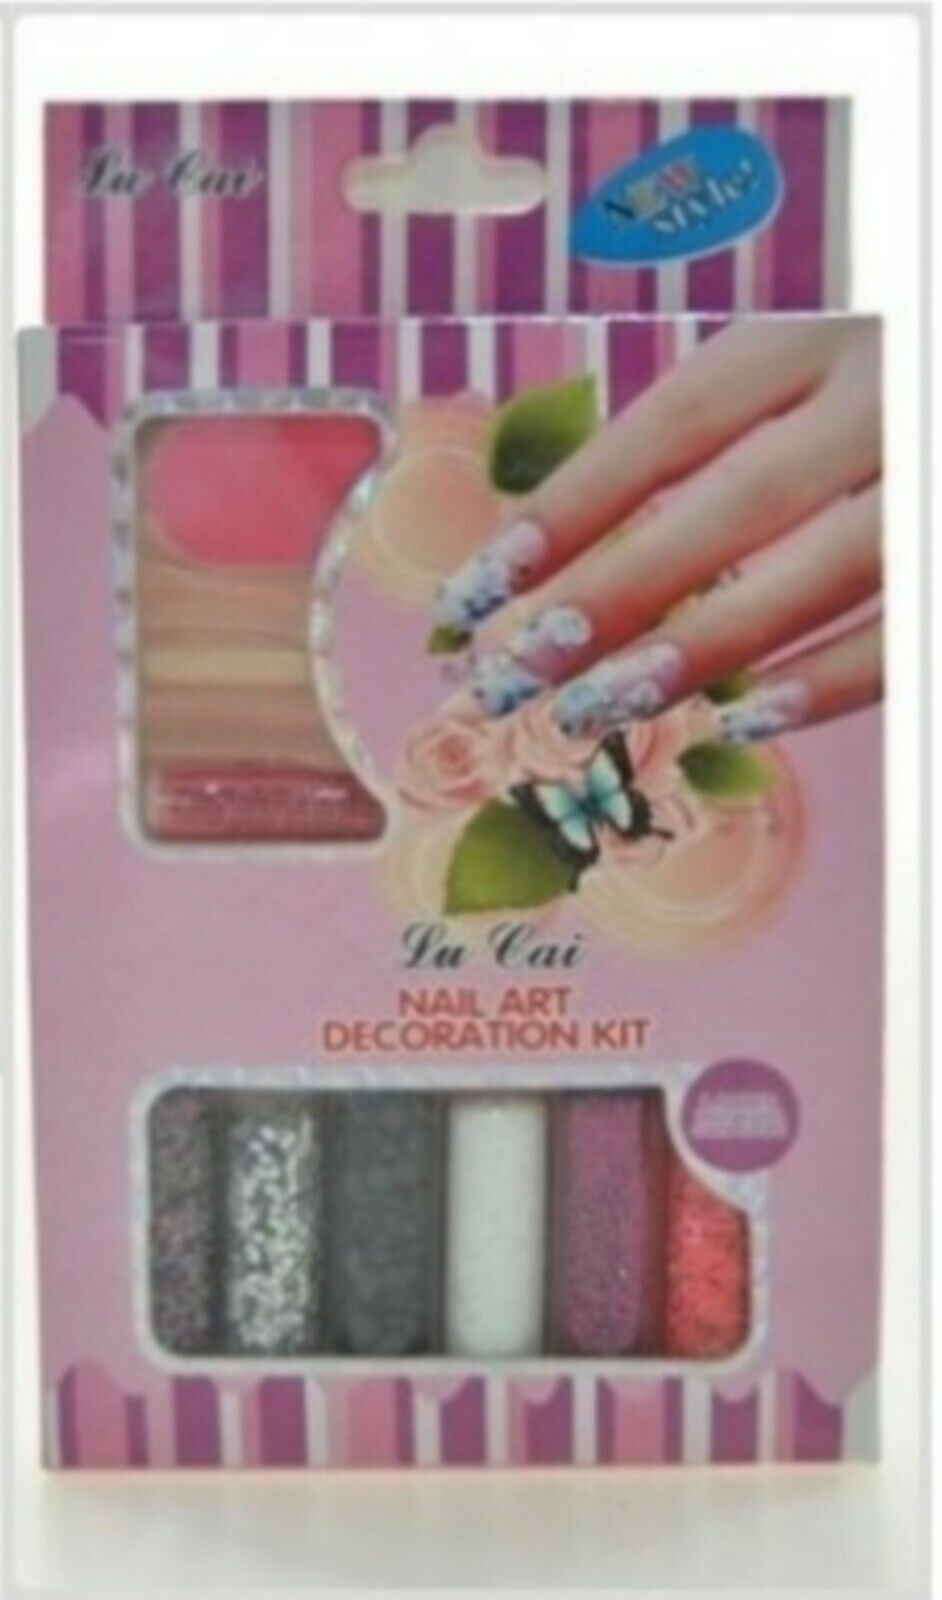 KIT DECORATION ONGLES NAIL ART STRASS ET PAILLETTES Lu Cai